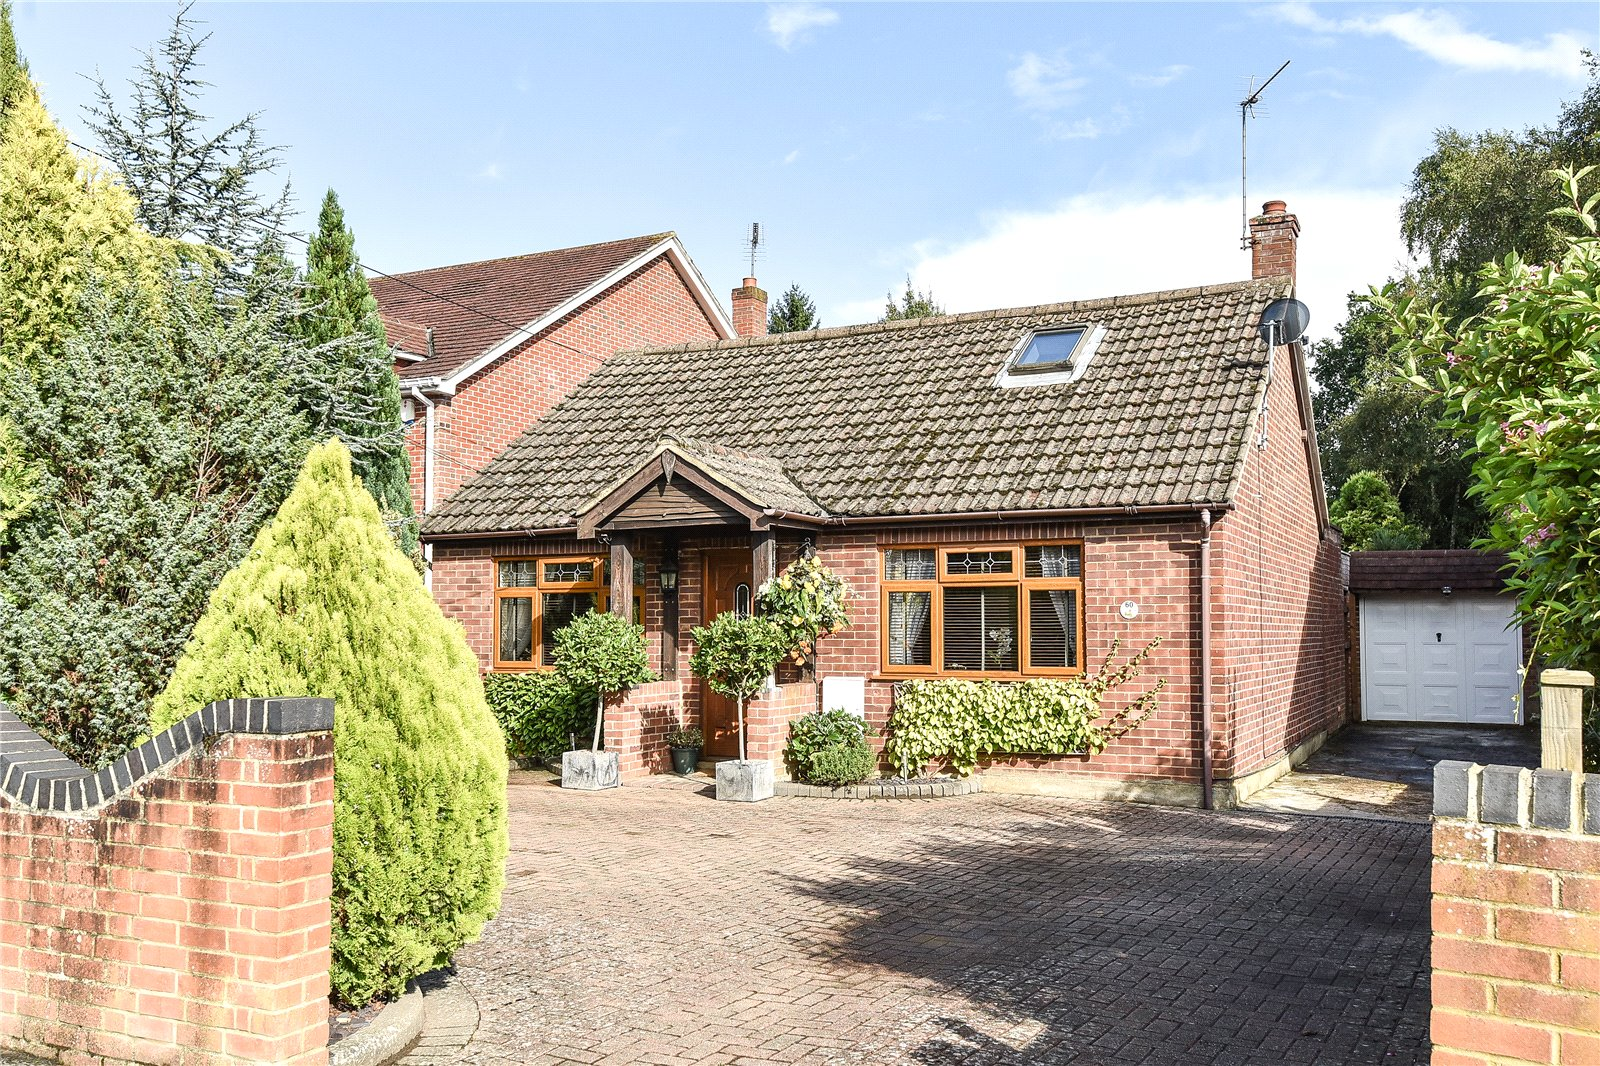 3 Bedrooms Detached Bungalow for sale in Branksome Hill Road, College Town, Sandhurst, Berkshire, GU47